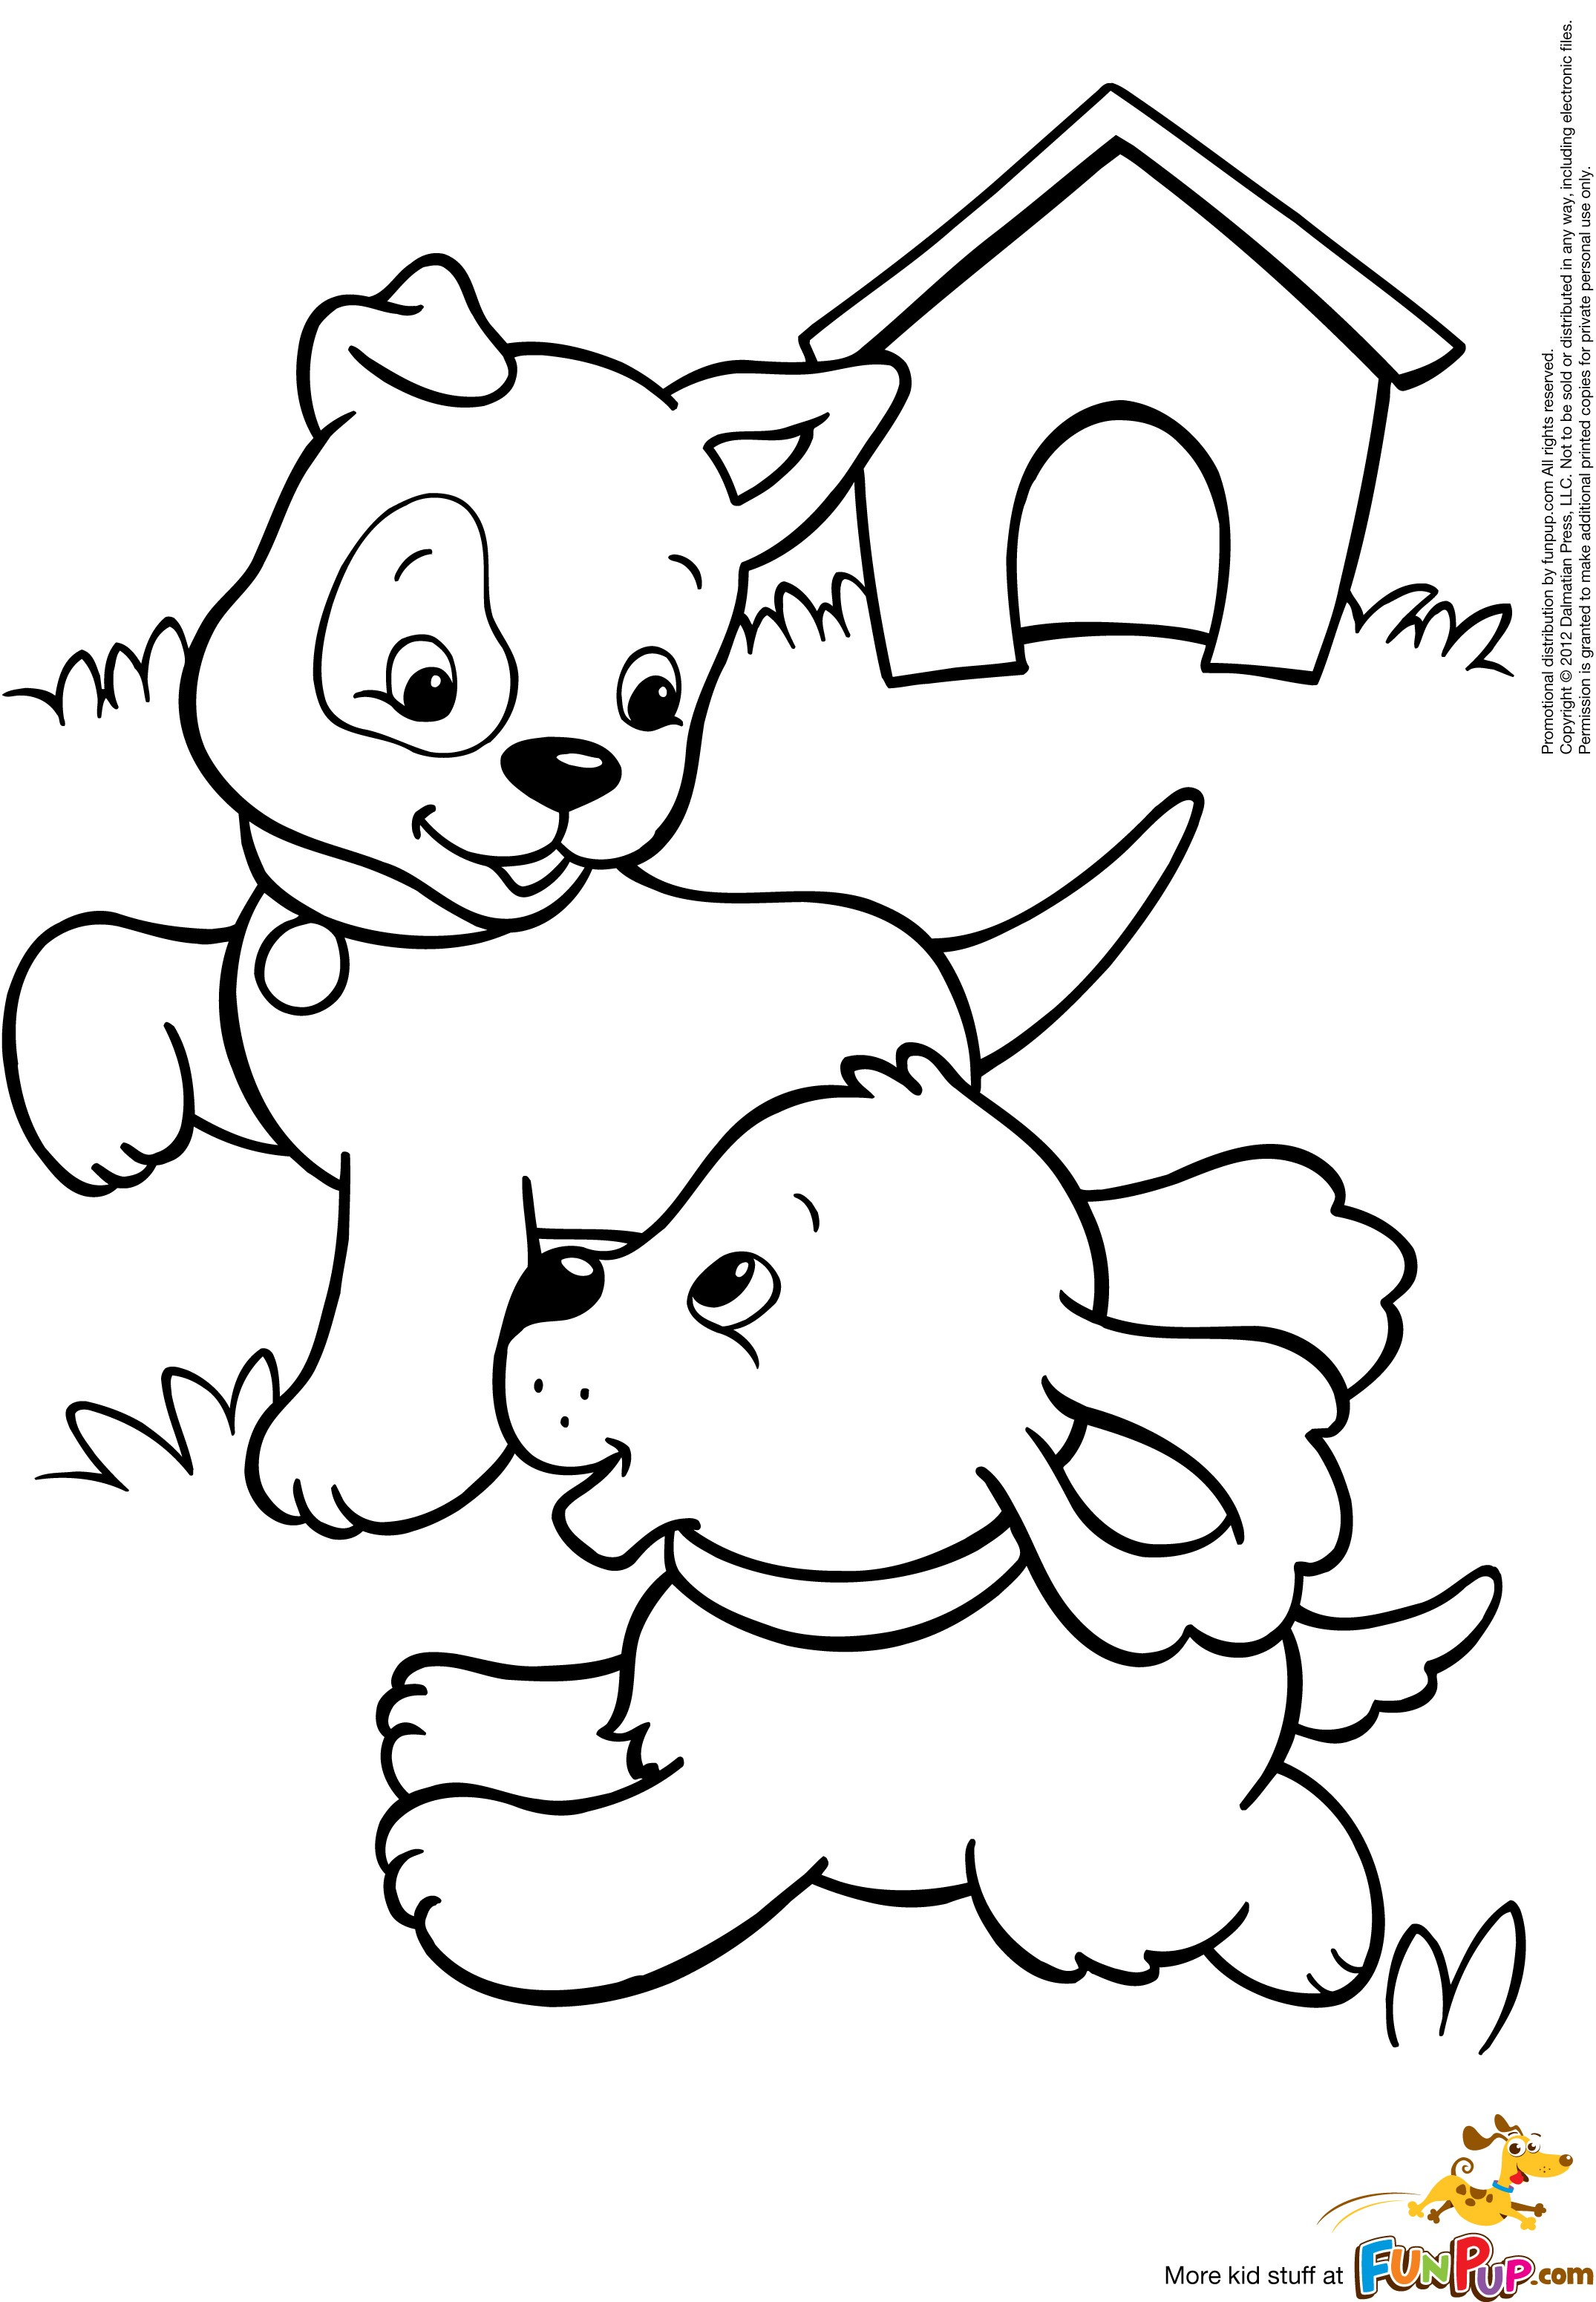 dogs pictures to print husky coloring pages best coloring pages for kids dogs to print pictures